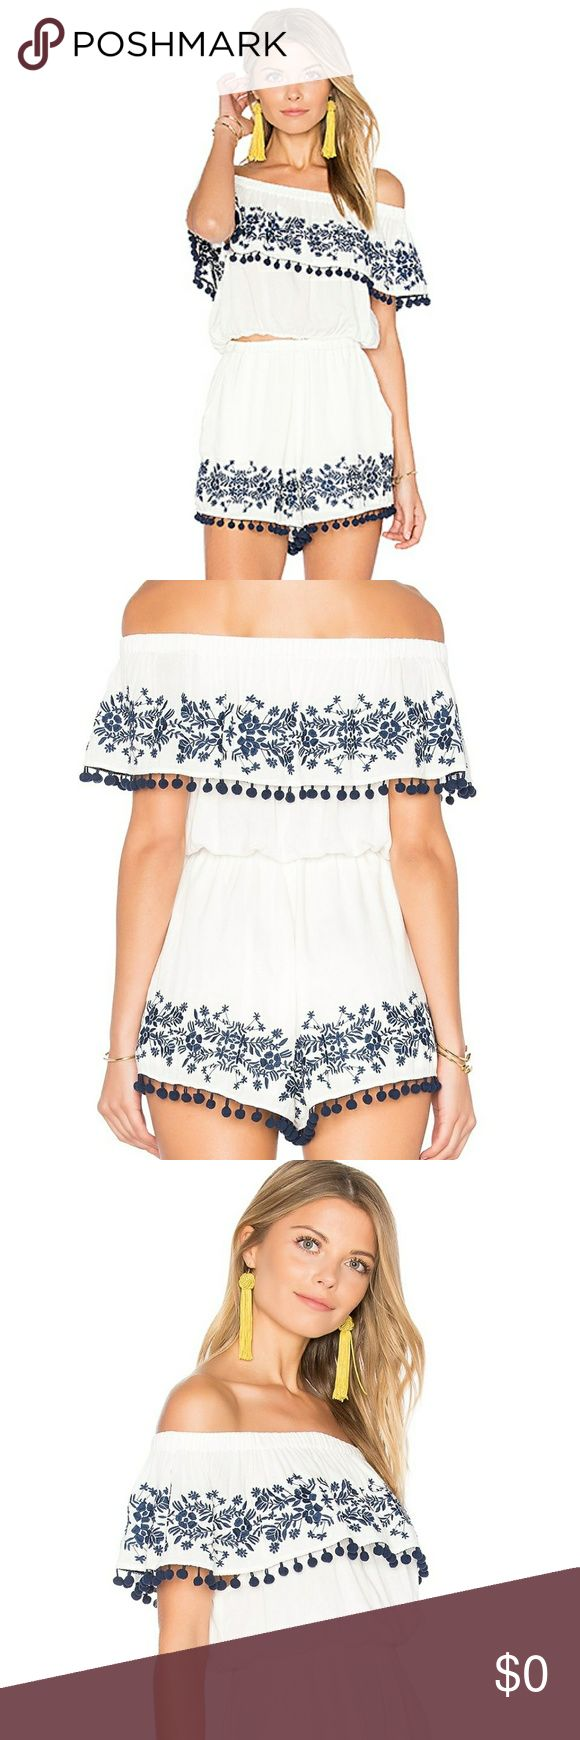 Show Me Your Mumu Teagan Pom Pom Crop Top 🎀Arriving  SOON!!🎀            ⭐🌟SOLD OUT ONLINE ⭐⭐ Off the shoulder crop top  featuring contrast navy embroidery , pom pom trim and elastic neck line and hem . Draped bodice overlay Claims  of running small, suggest sizing up 🌼 Likes will be tagged when it arrives 🌼 Show Me Your MuMu Tops Crop Tops